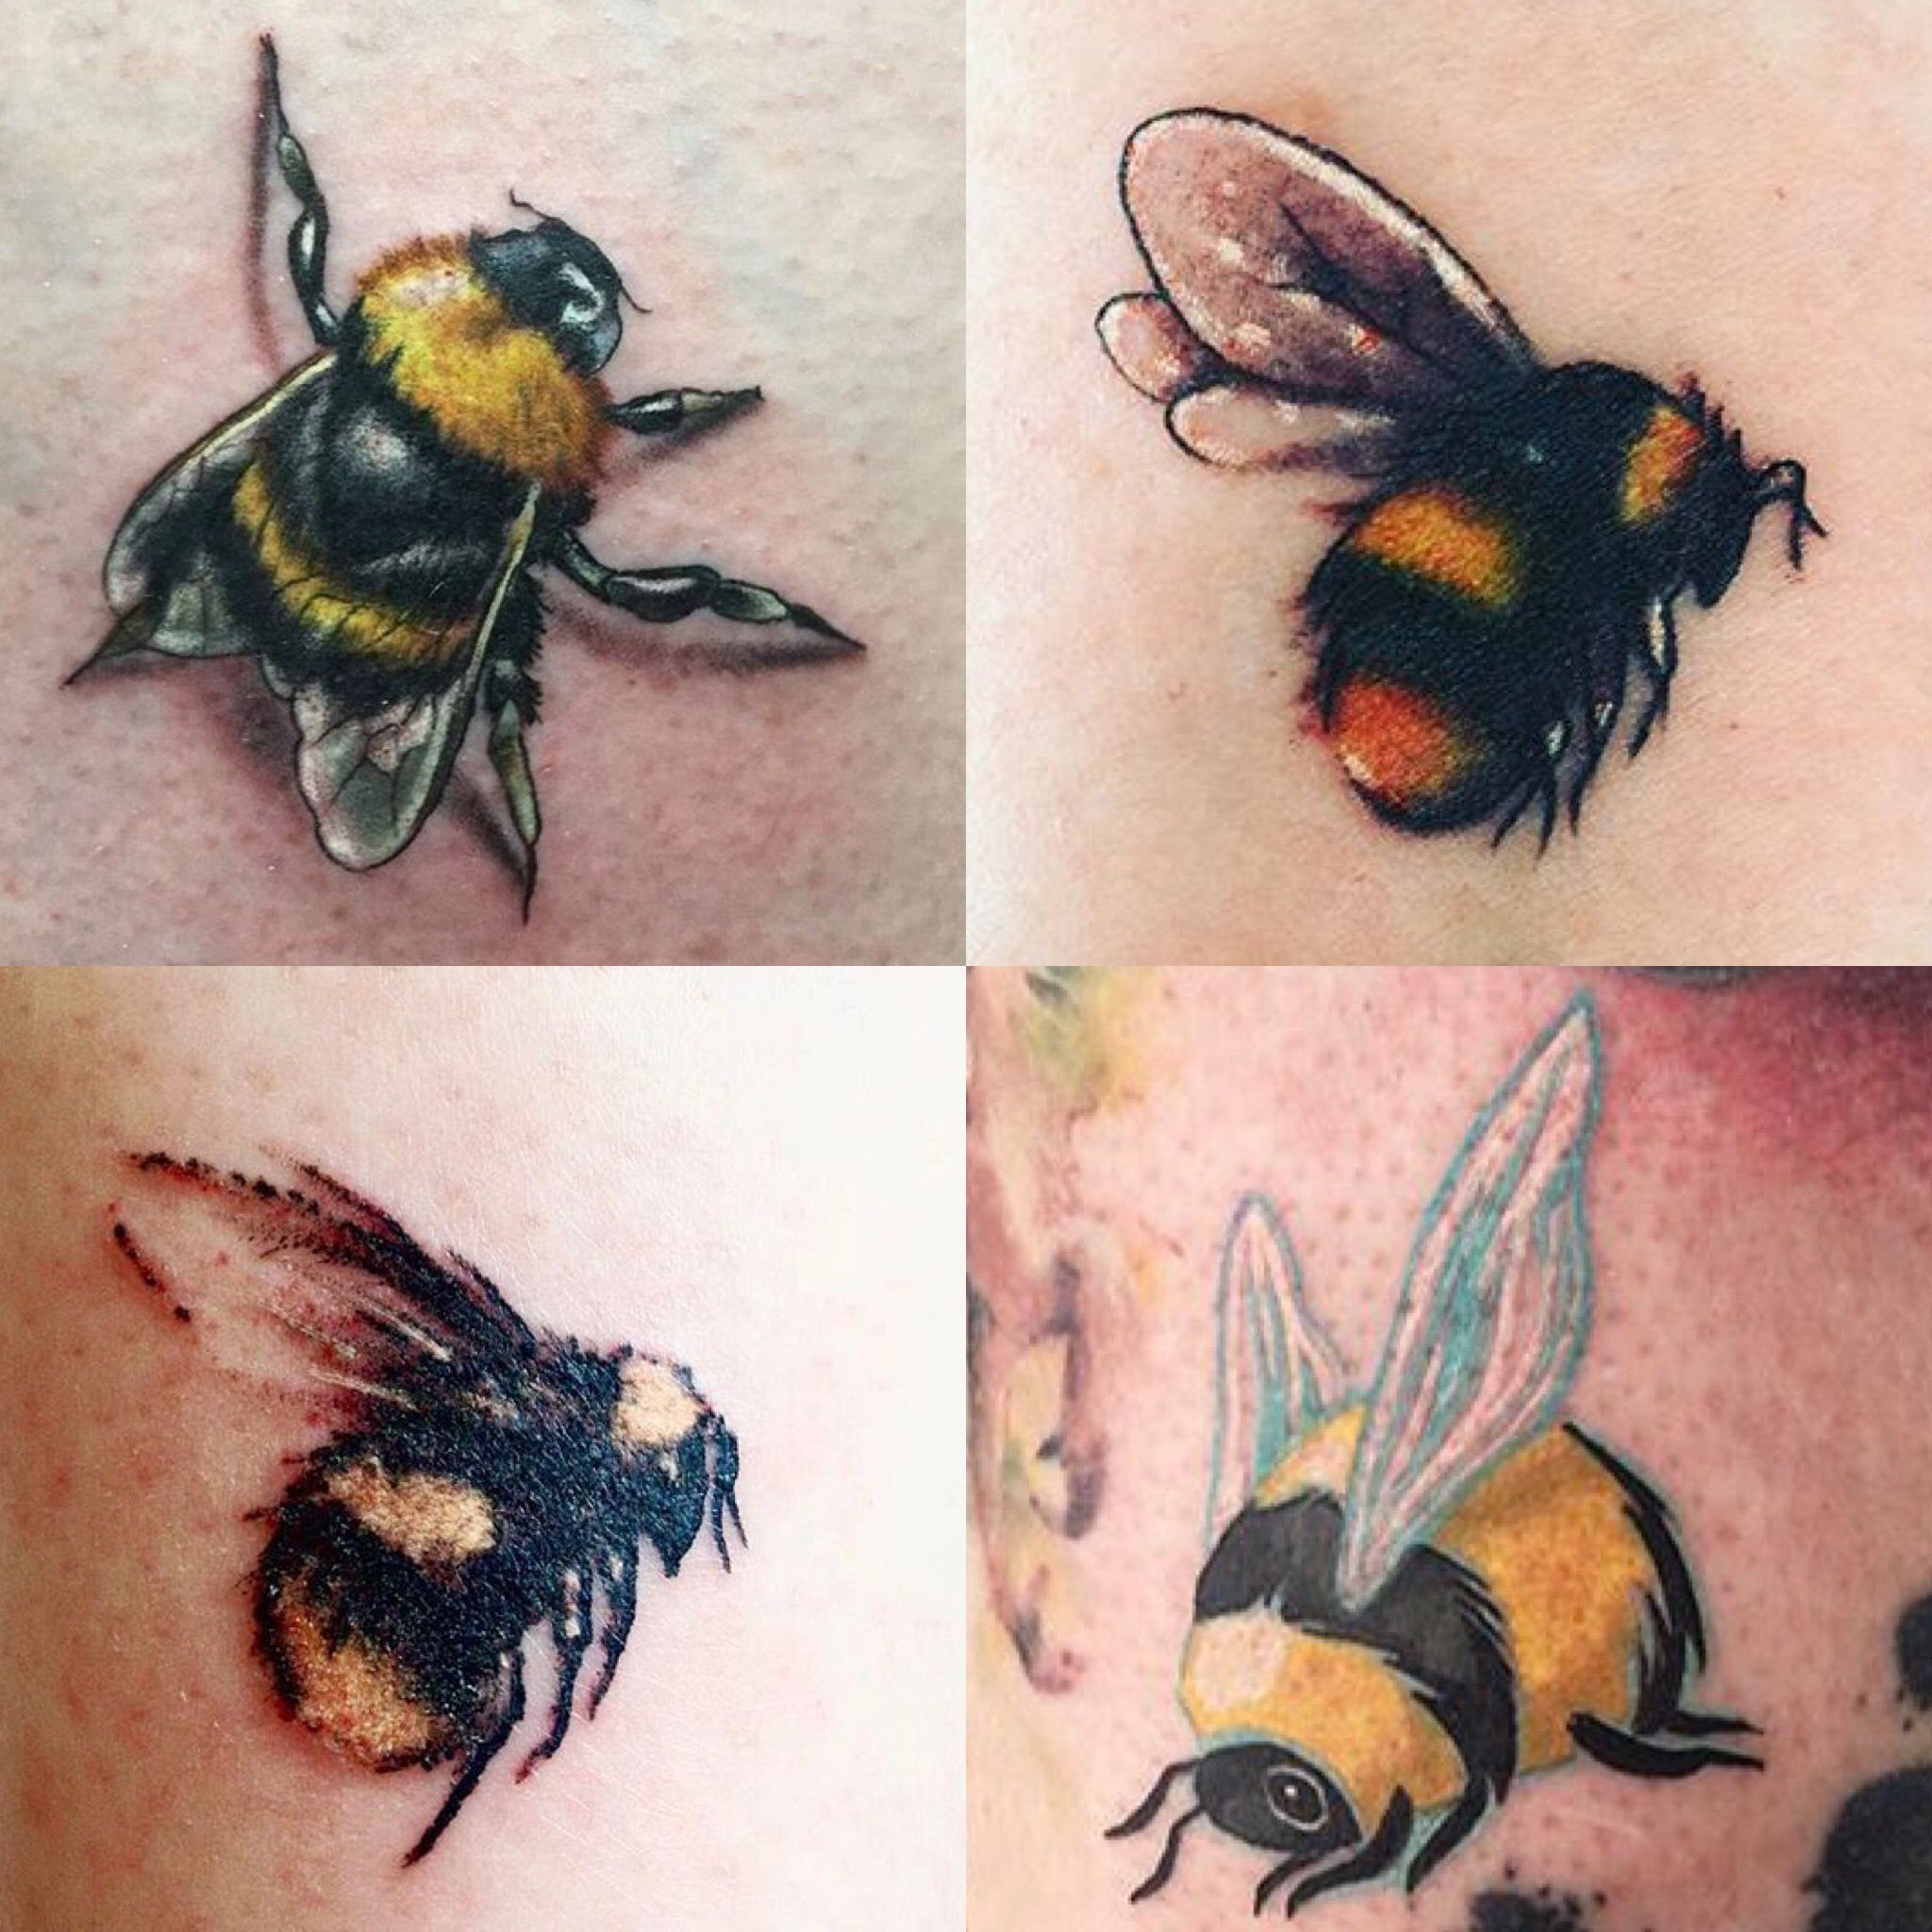 Bee Behind My Ear On Neck Bee Tattoo Bumble Bee Tattoo Insect Tattoo